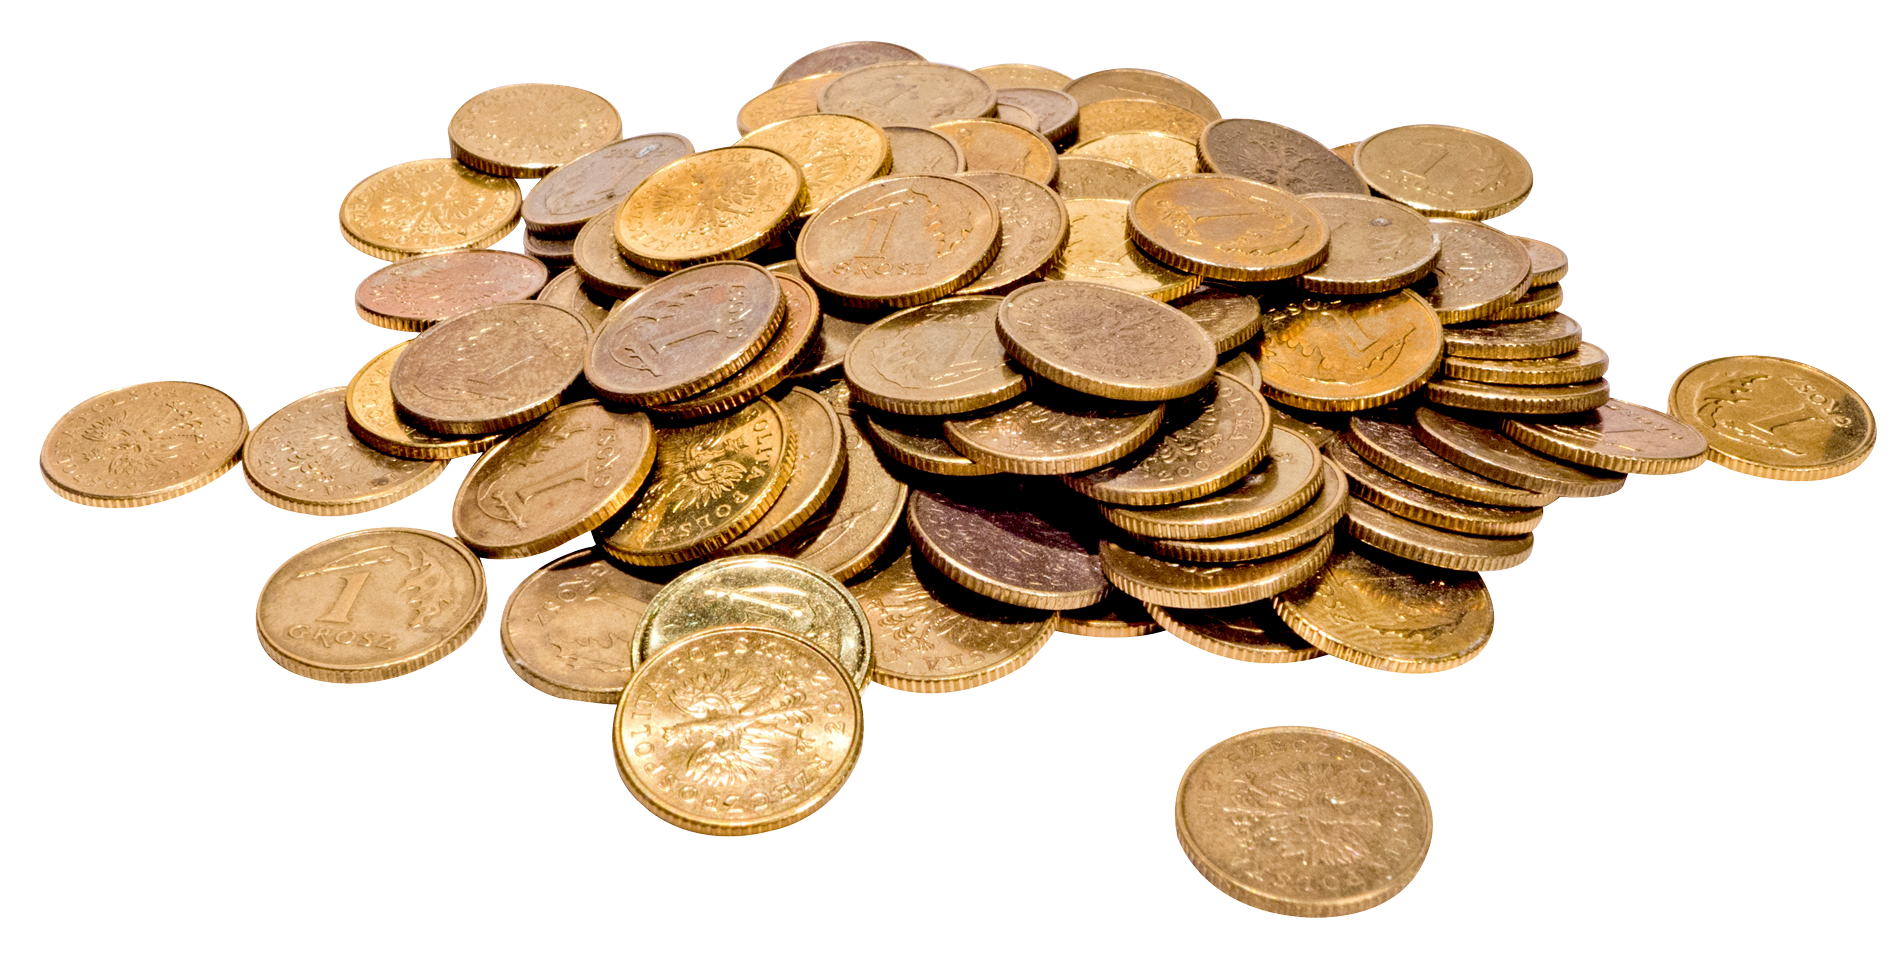 Money Coin Coins Currency Free Transparent Image HD PNG Image